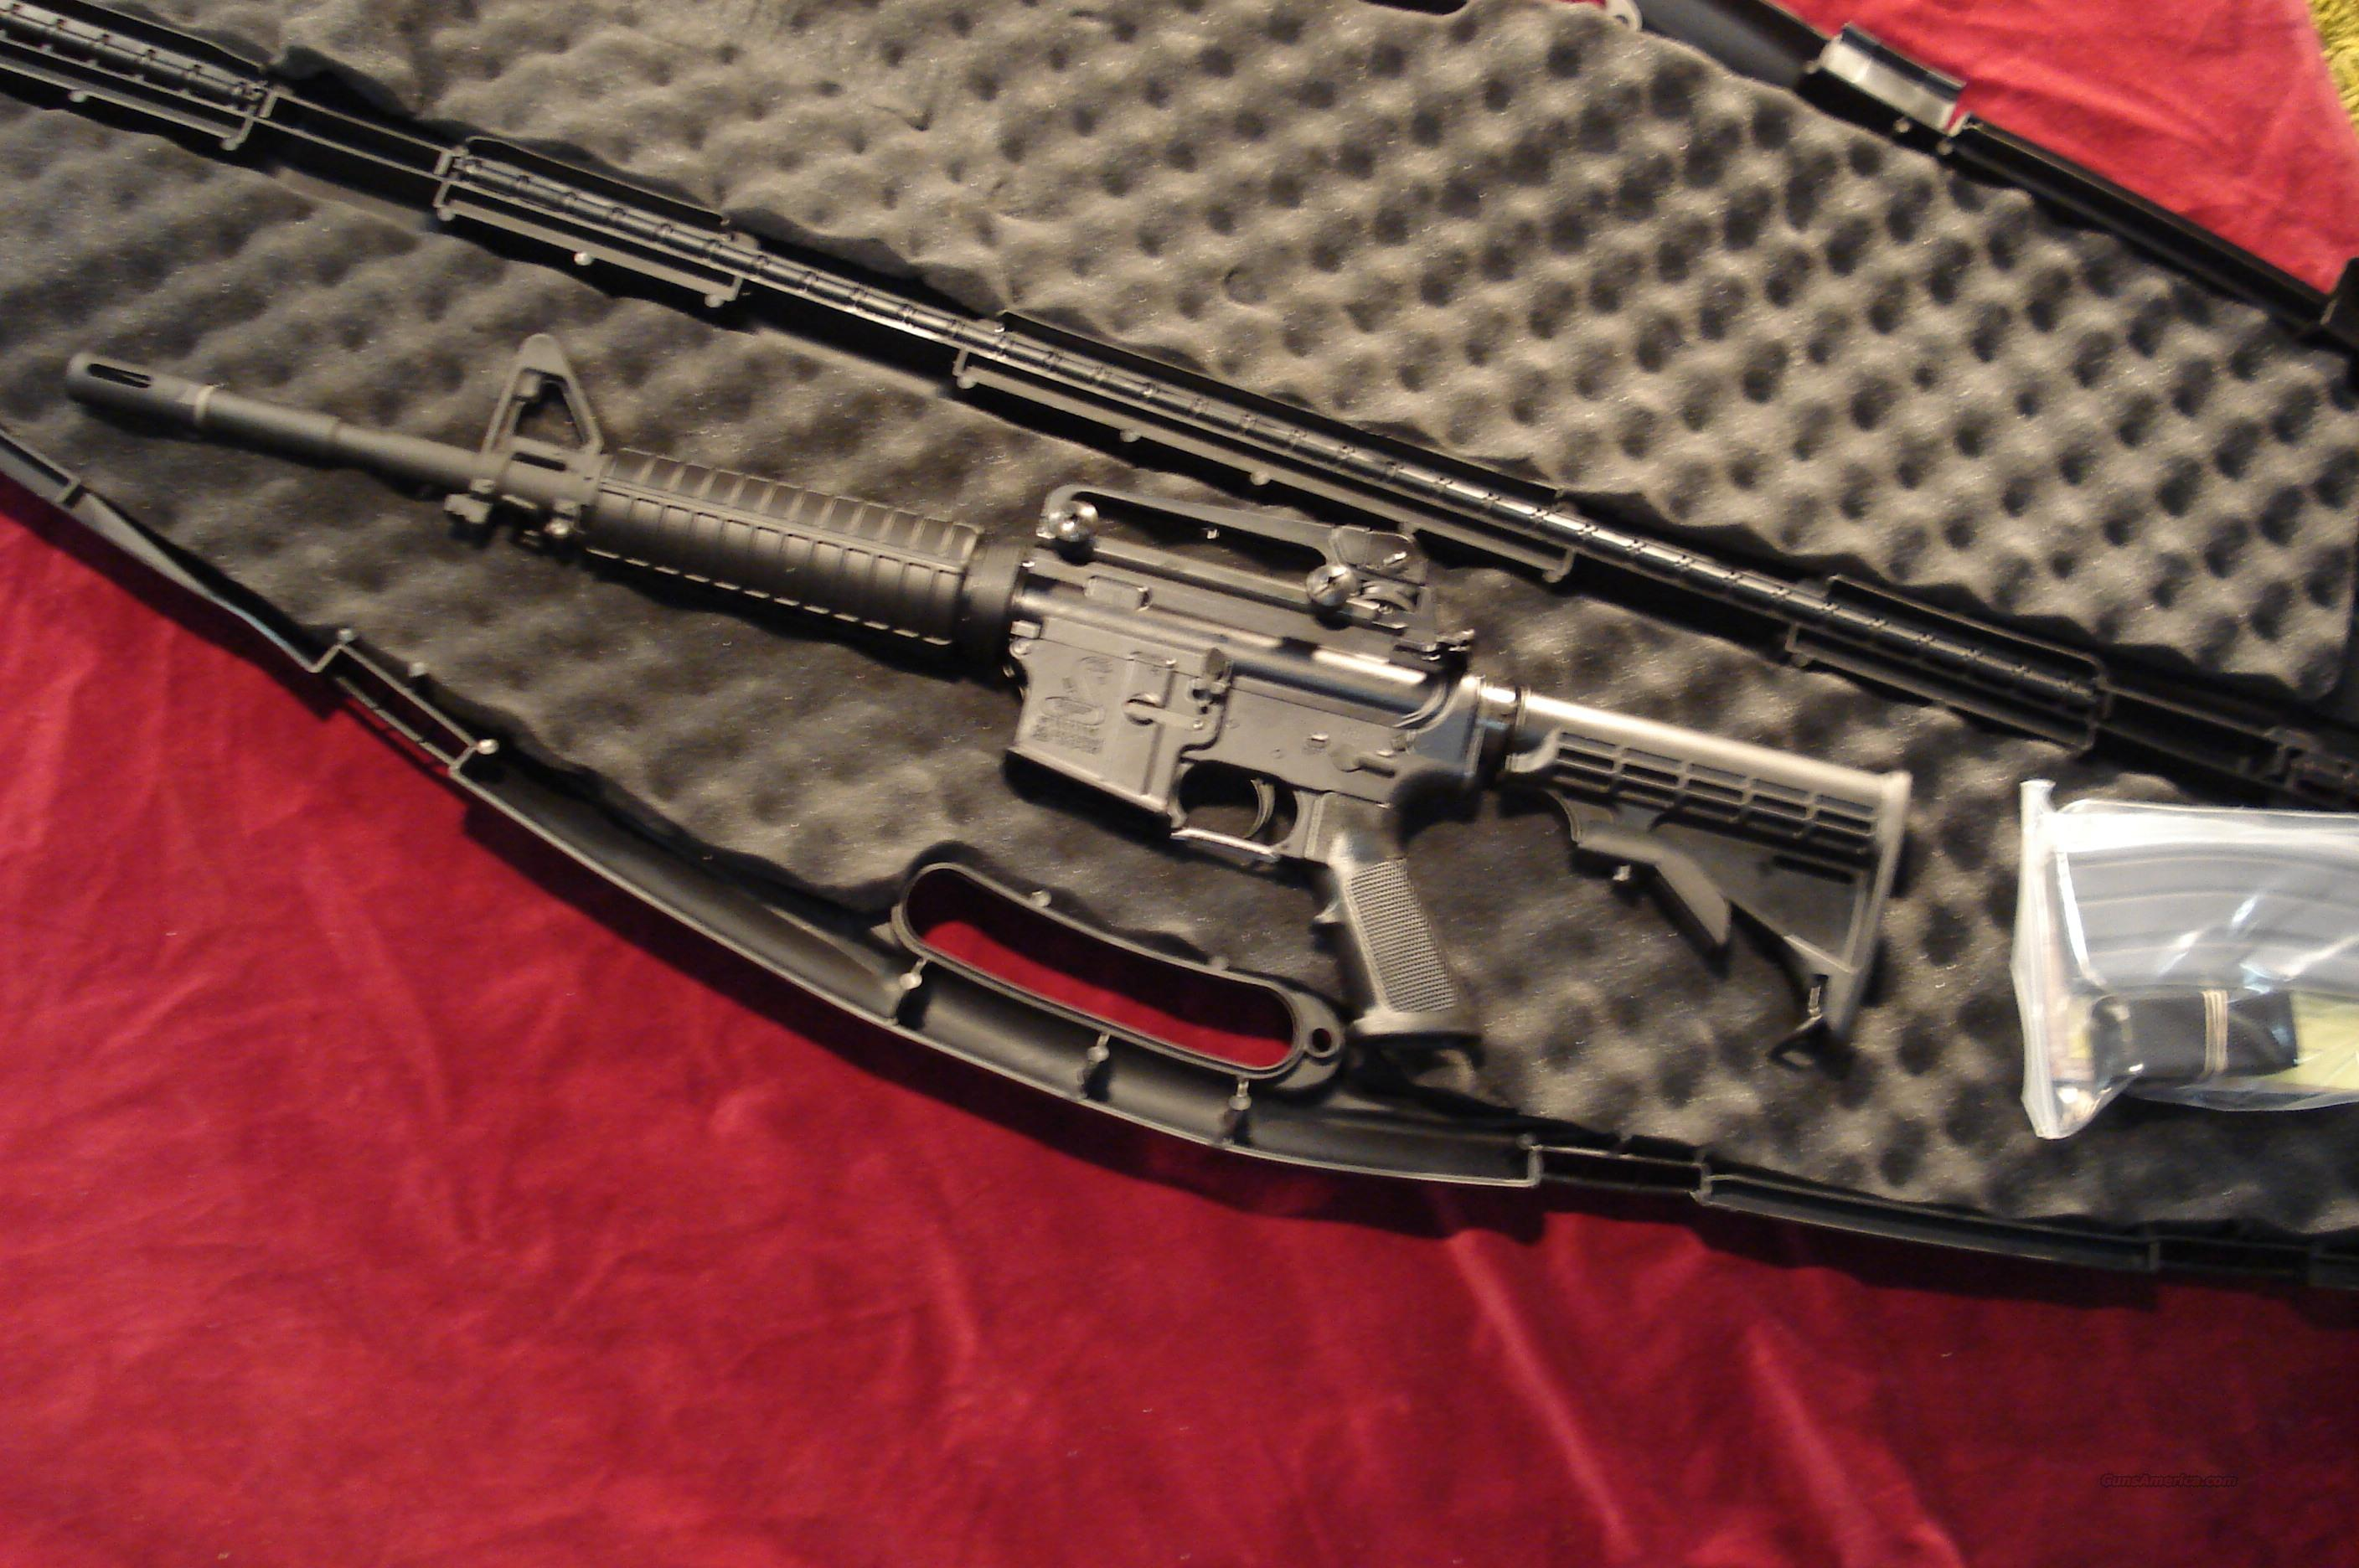 BUSHMASTER M4A3 IZZY CARBINE 223CAL. NEW   Guns > Rifles > Bushmaster Rifles > Complete Rifles